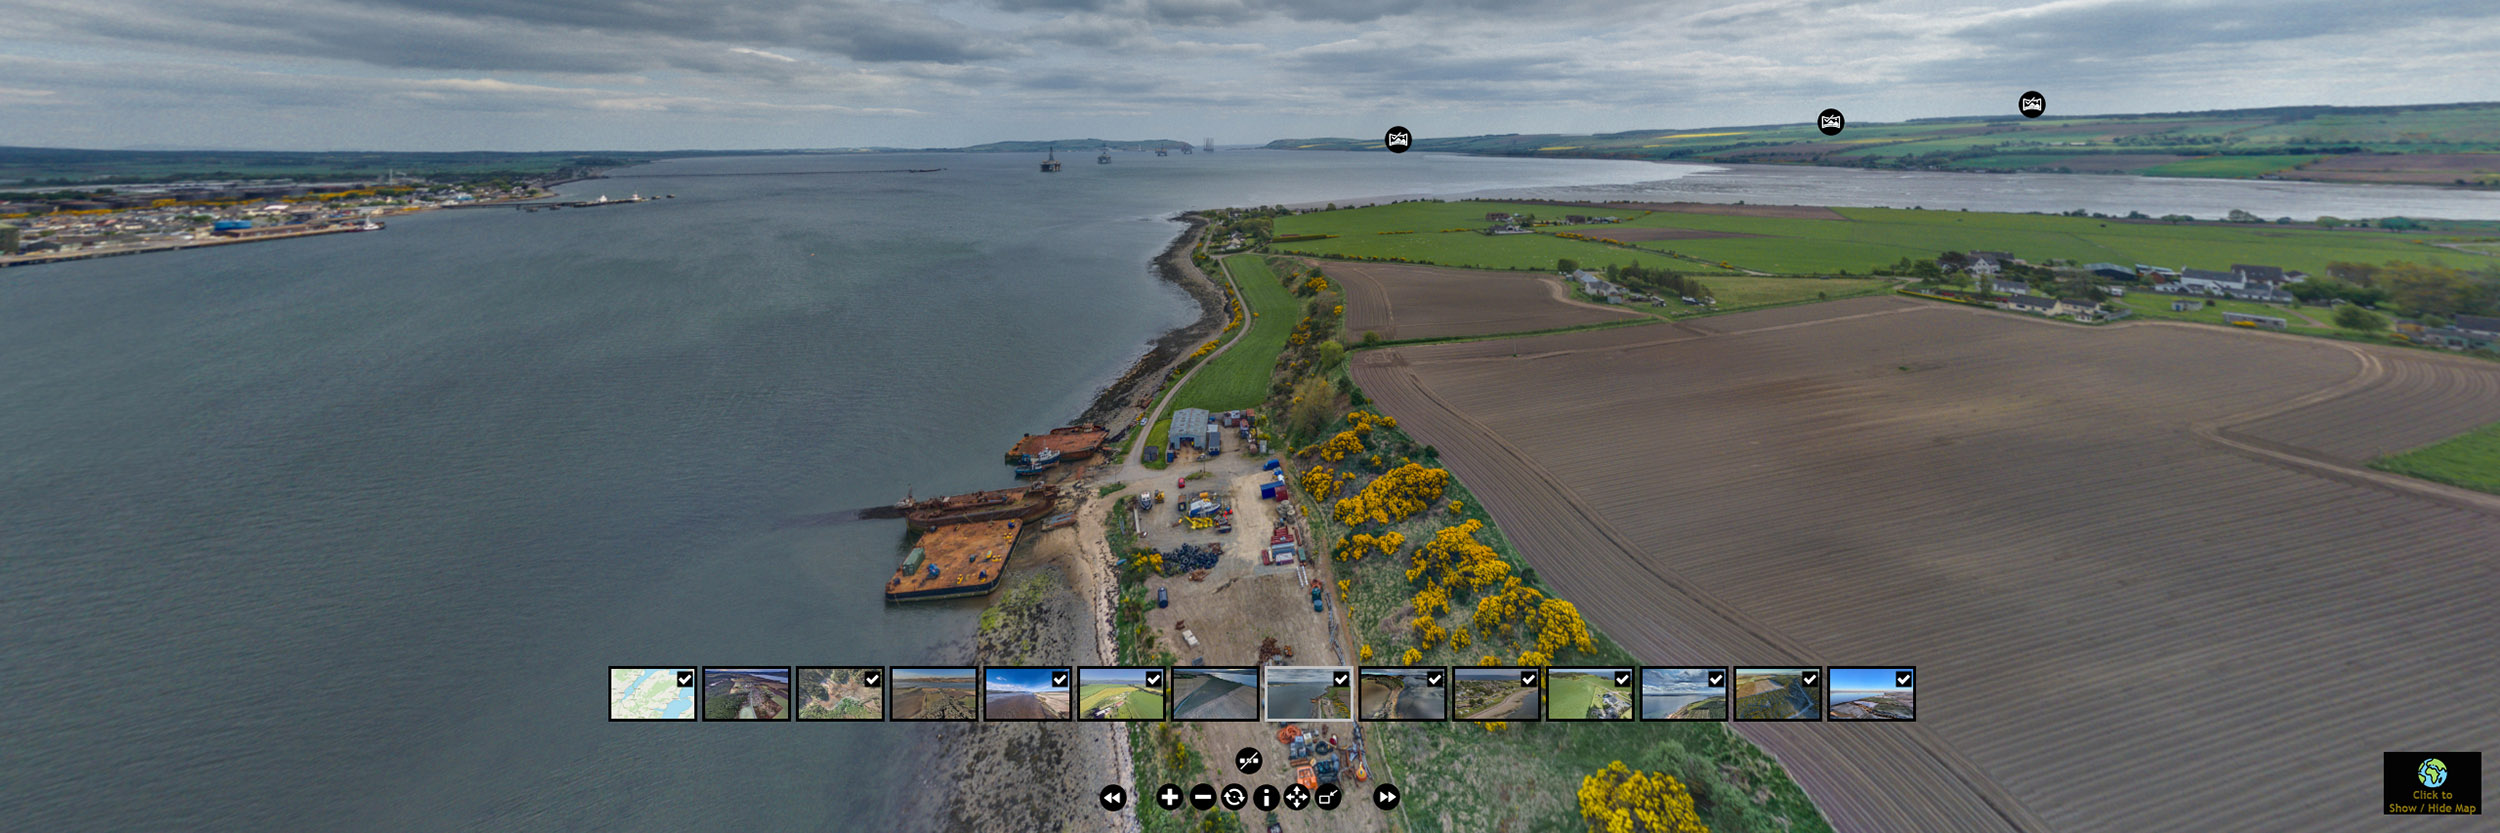 Interactive and Immersive Virtual Tours